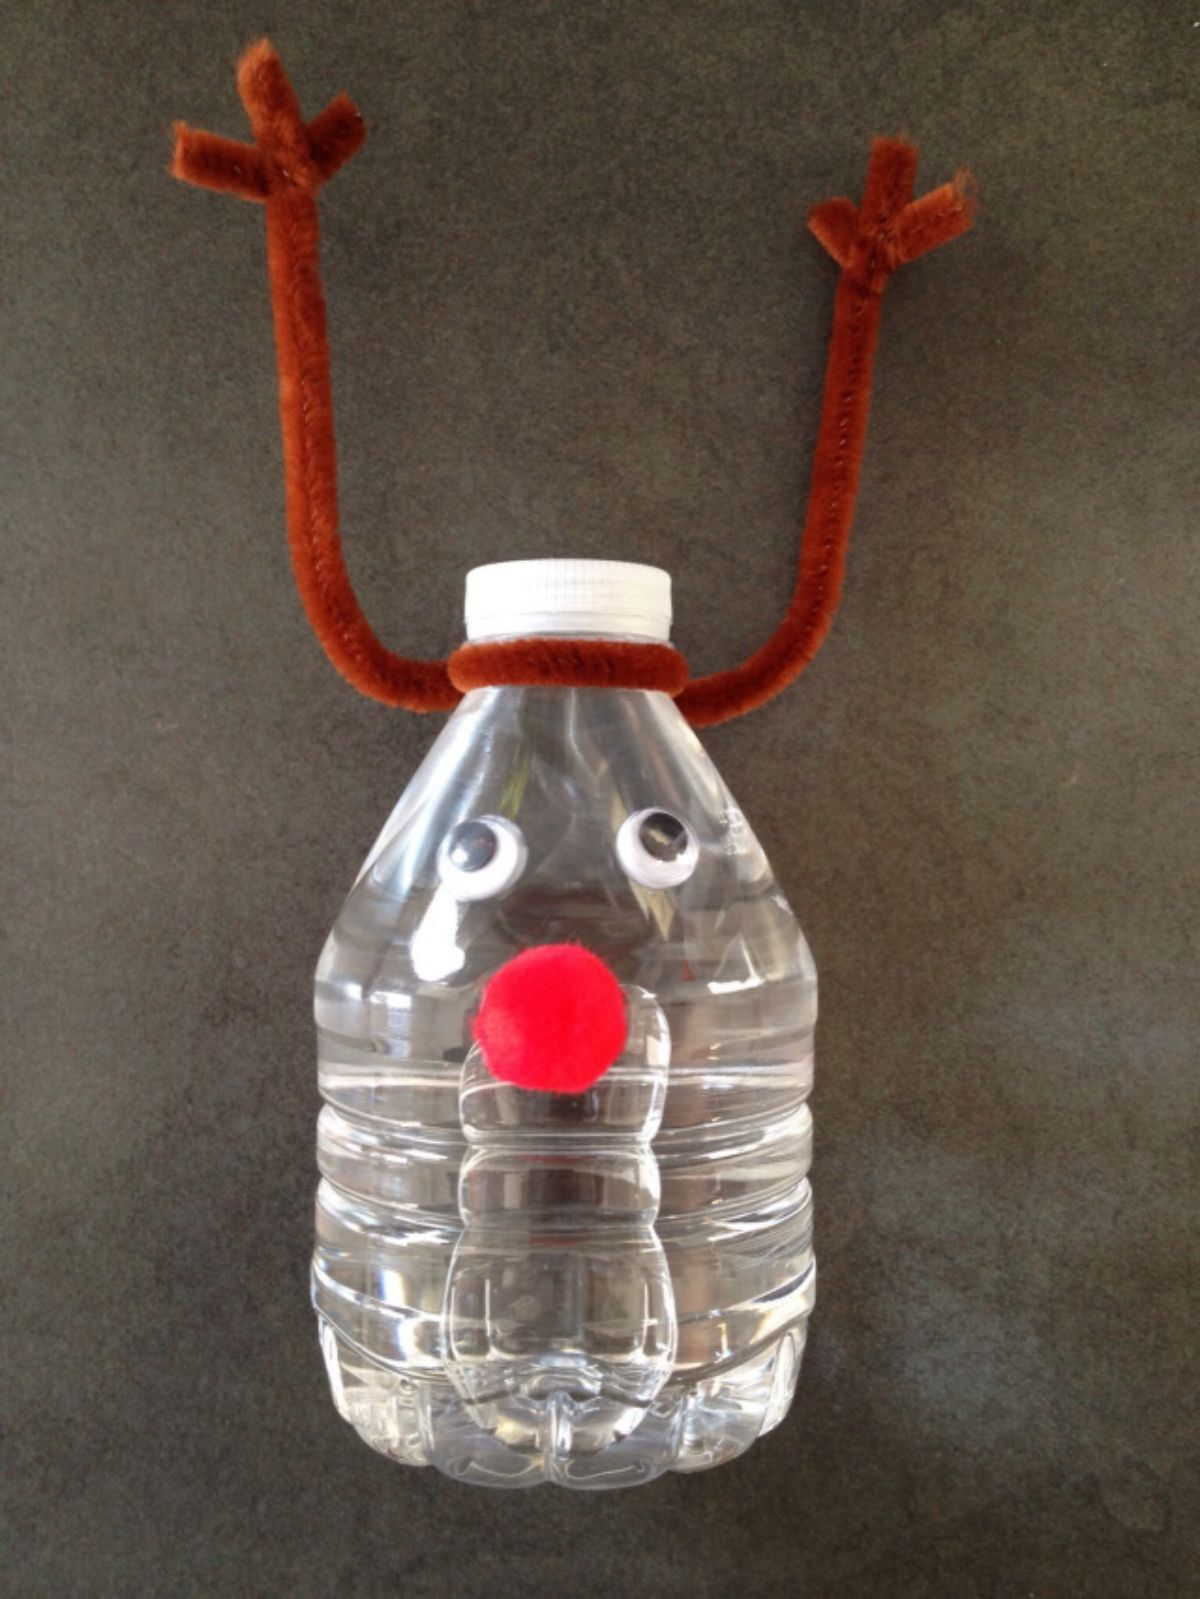 a water bottle with googly eyes and a red pom pom nose. Brown pipe cleaners are twisted to look like antlers